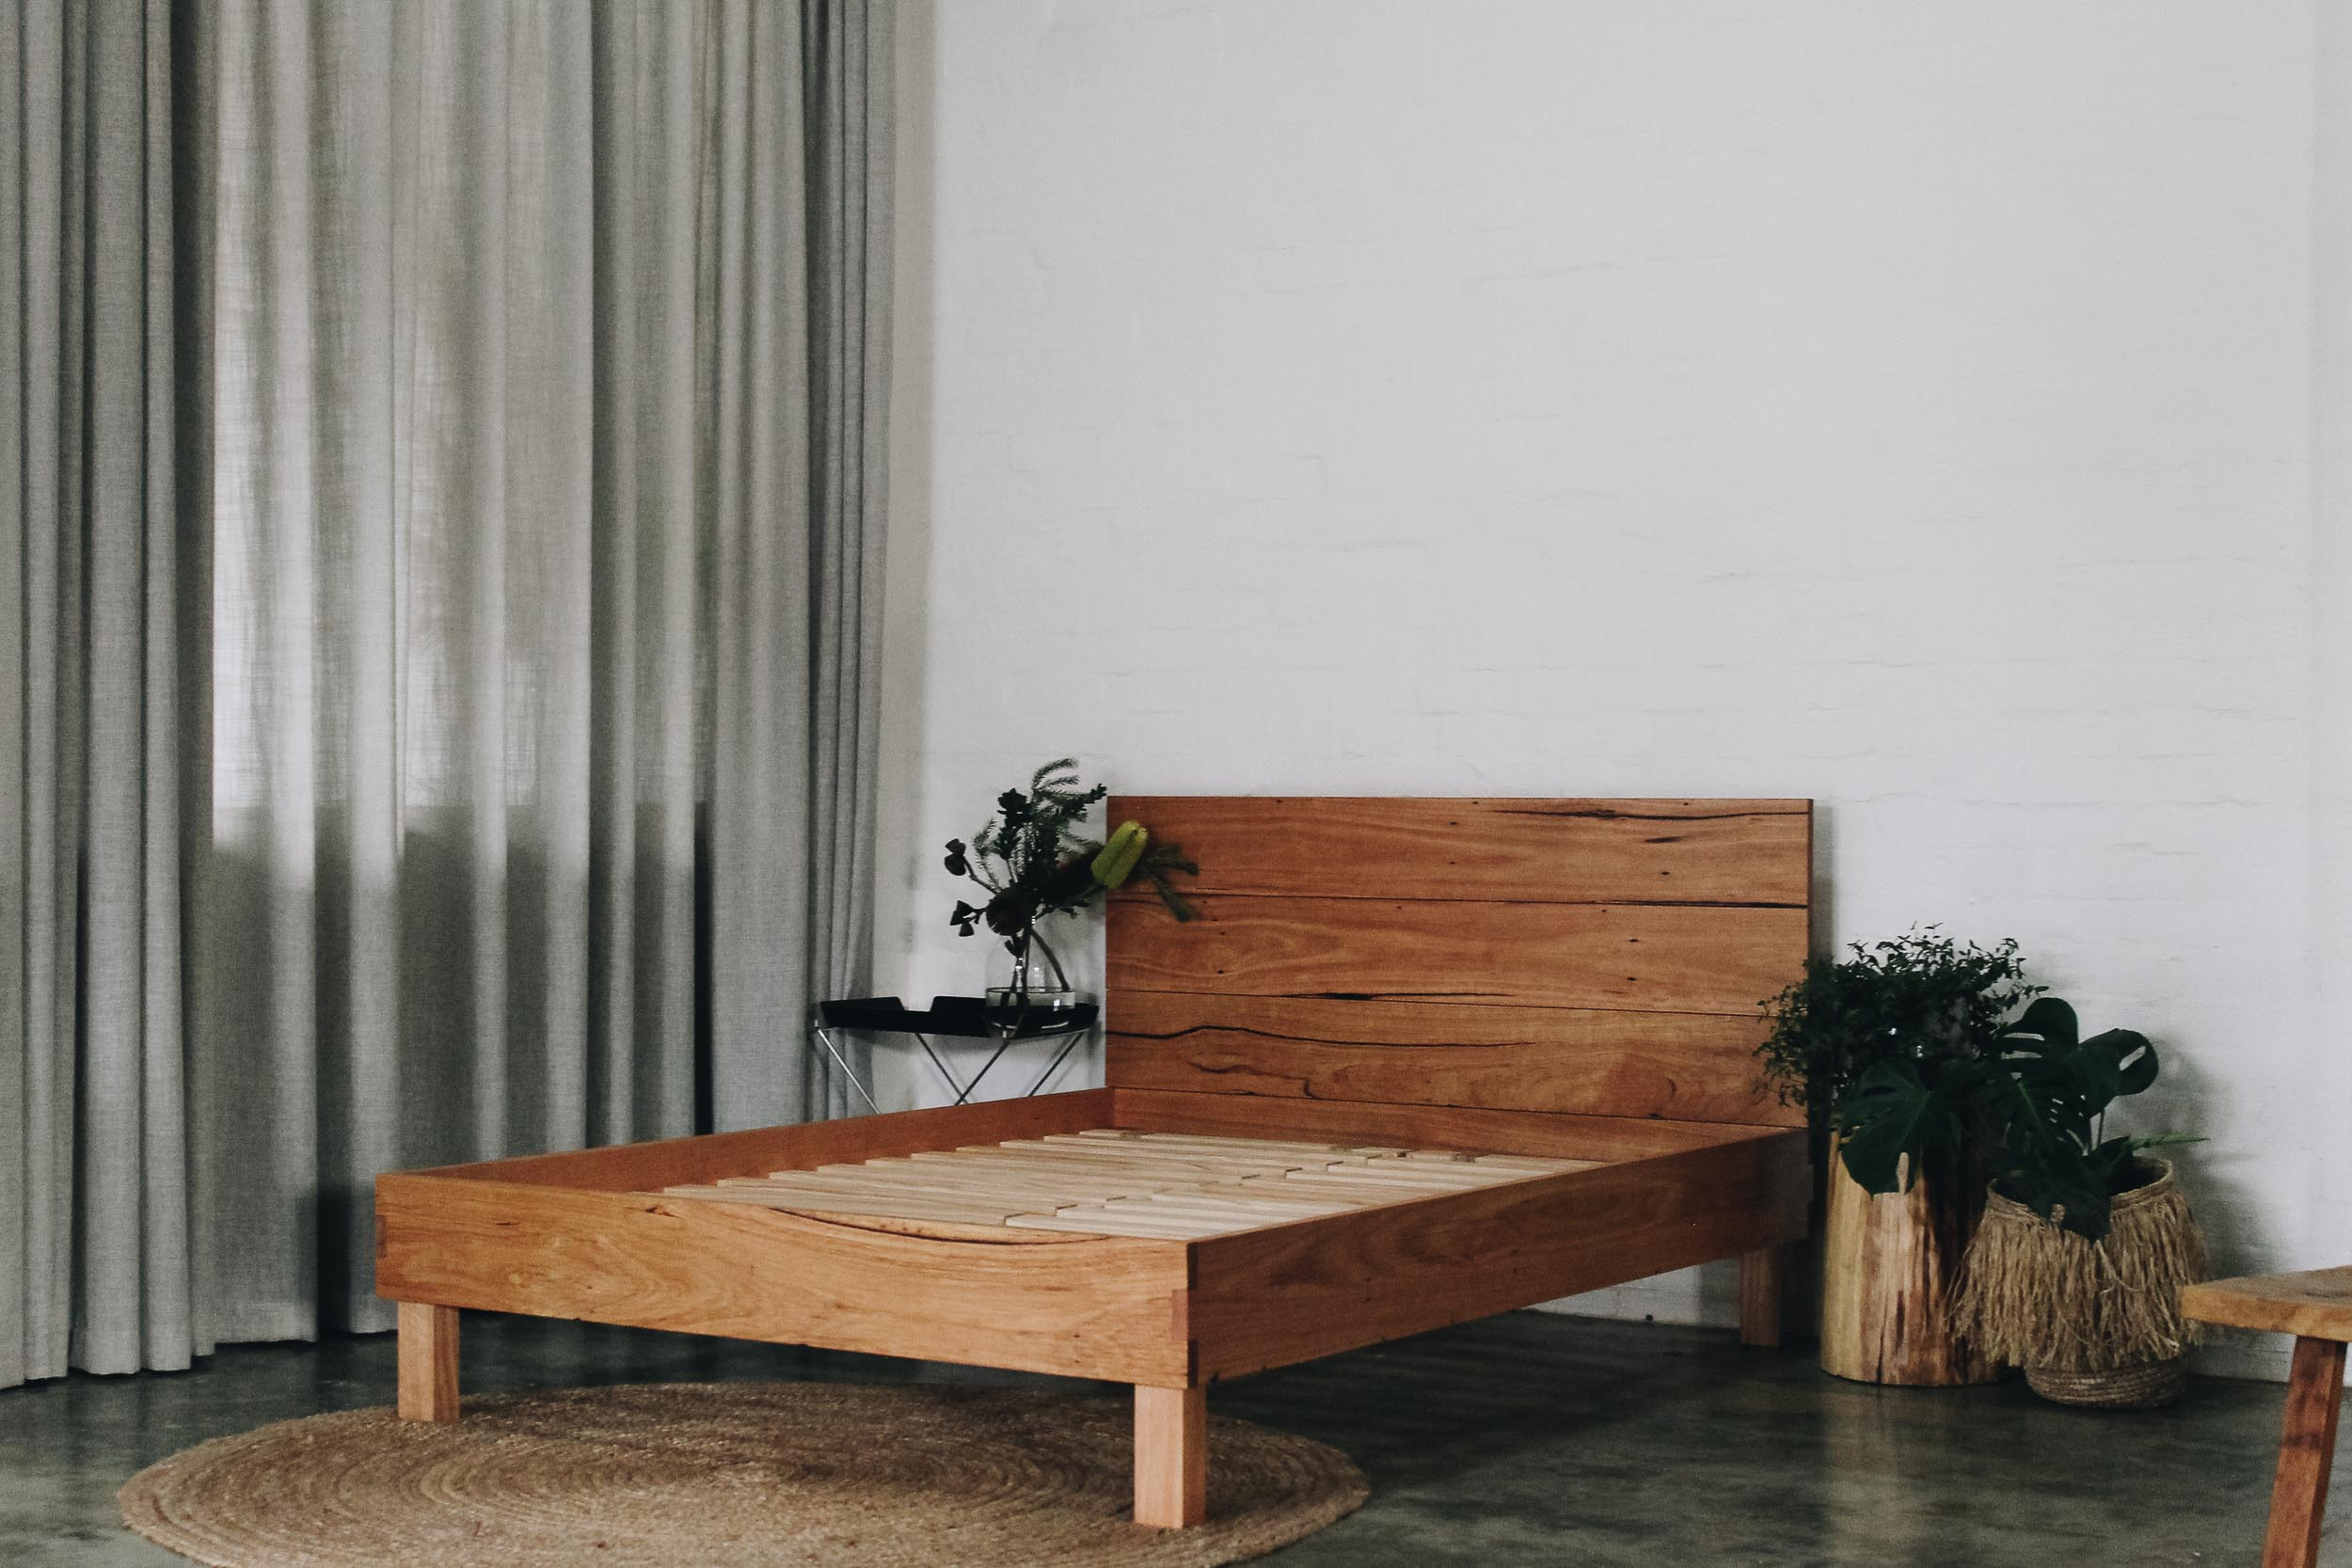 Al and Imo Handmade - Feature Headboard Square Bed - Surf Coast - Melbourne - Australia-25.jpg